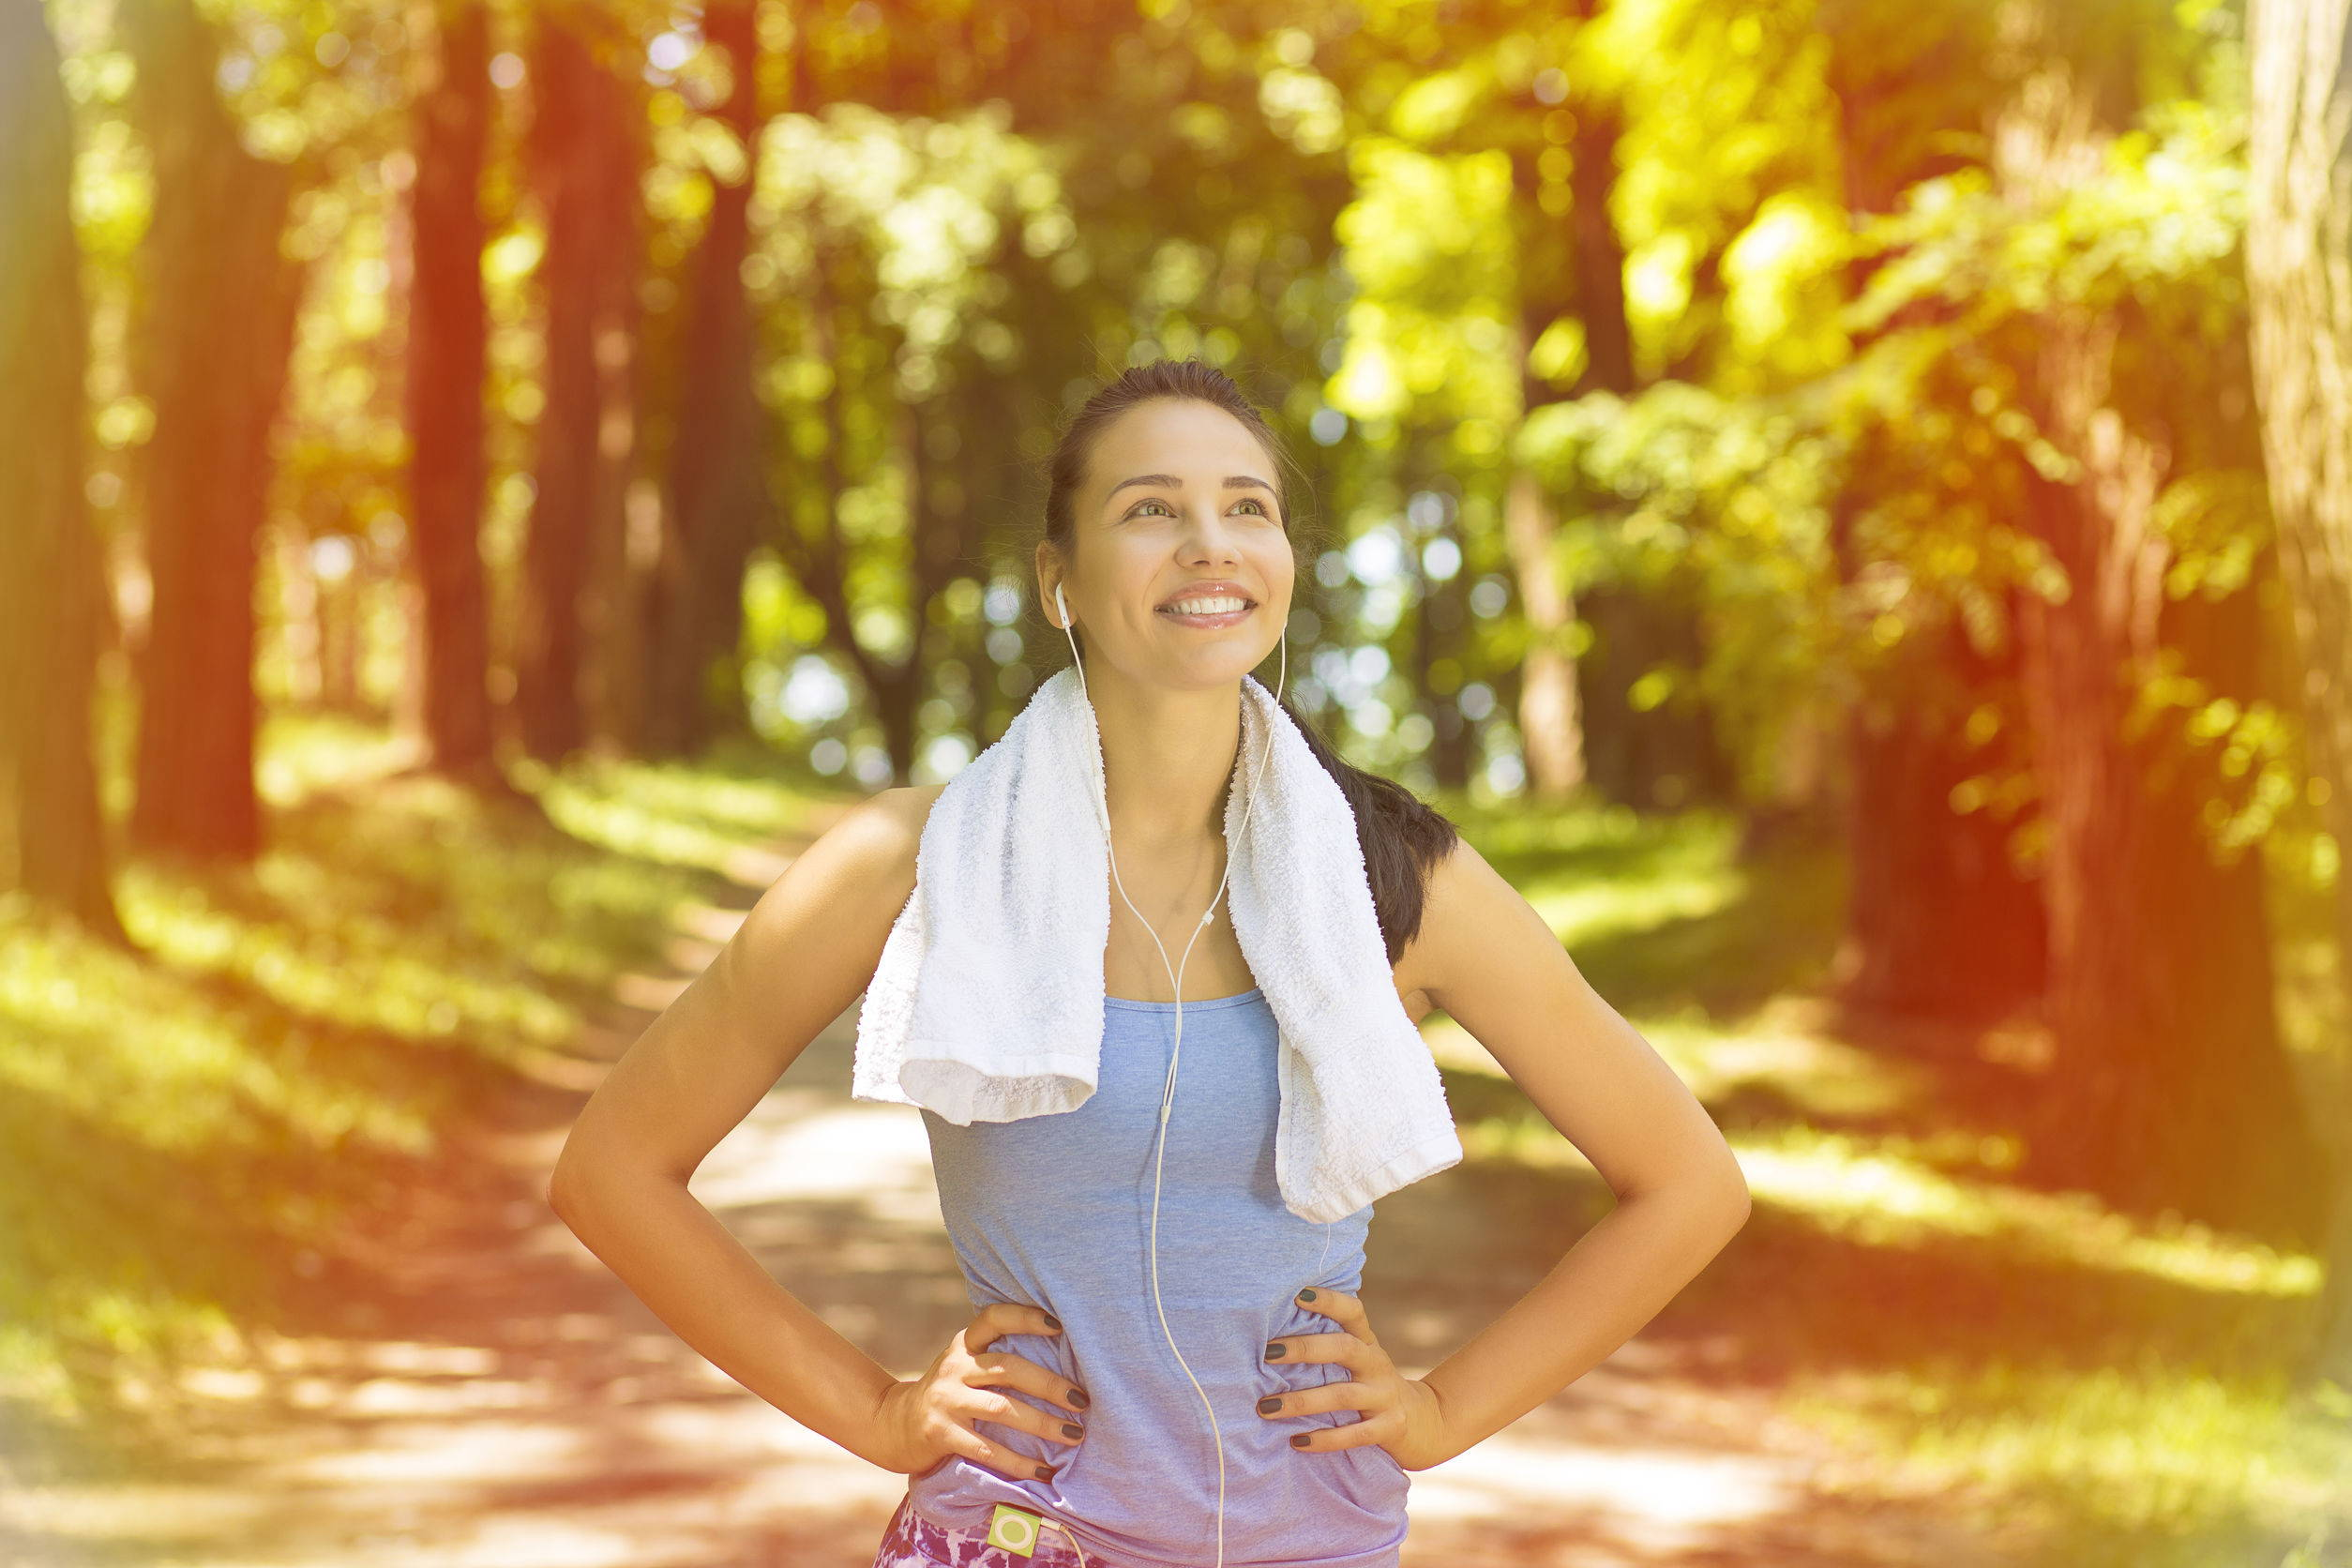 Young woman is energized after a workout and has a towel around her neck.